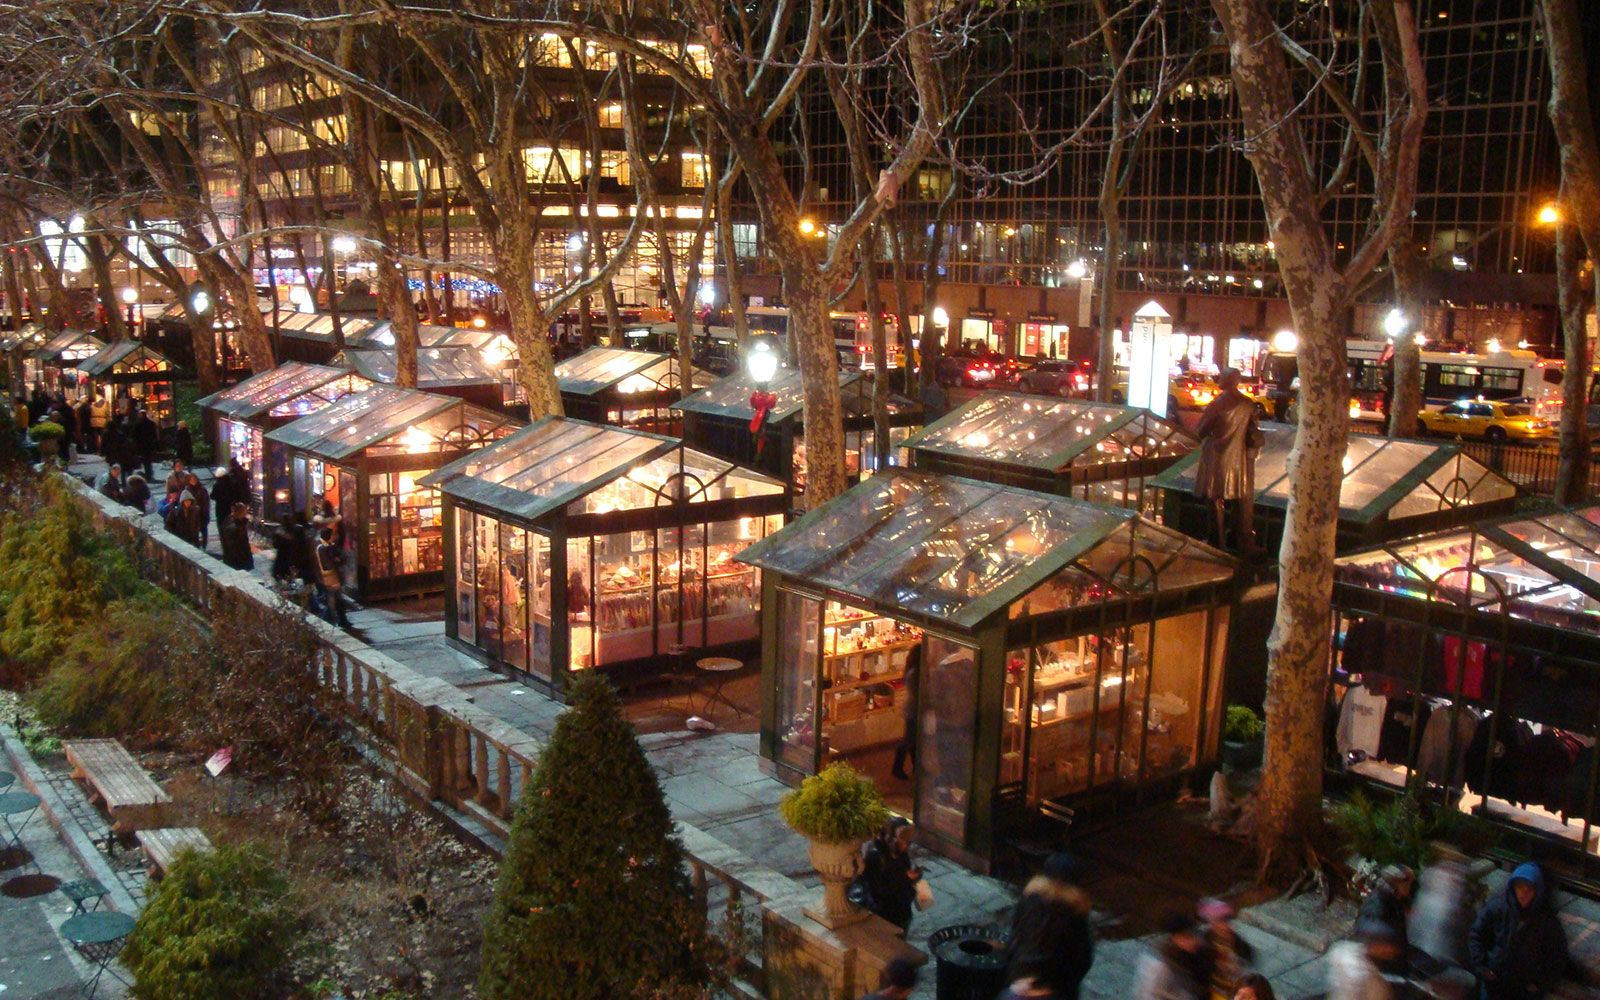 Christmas Market New York City.America S Best Christmas Markets City Life New York